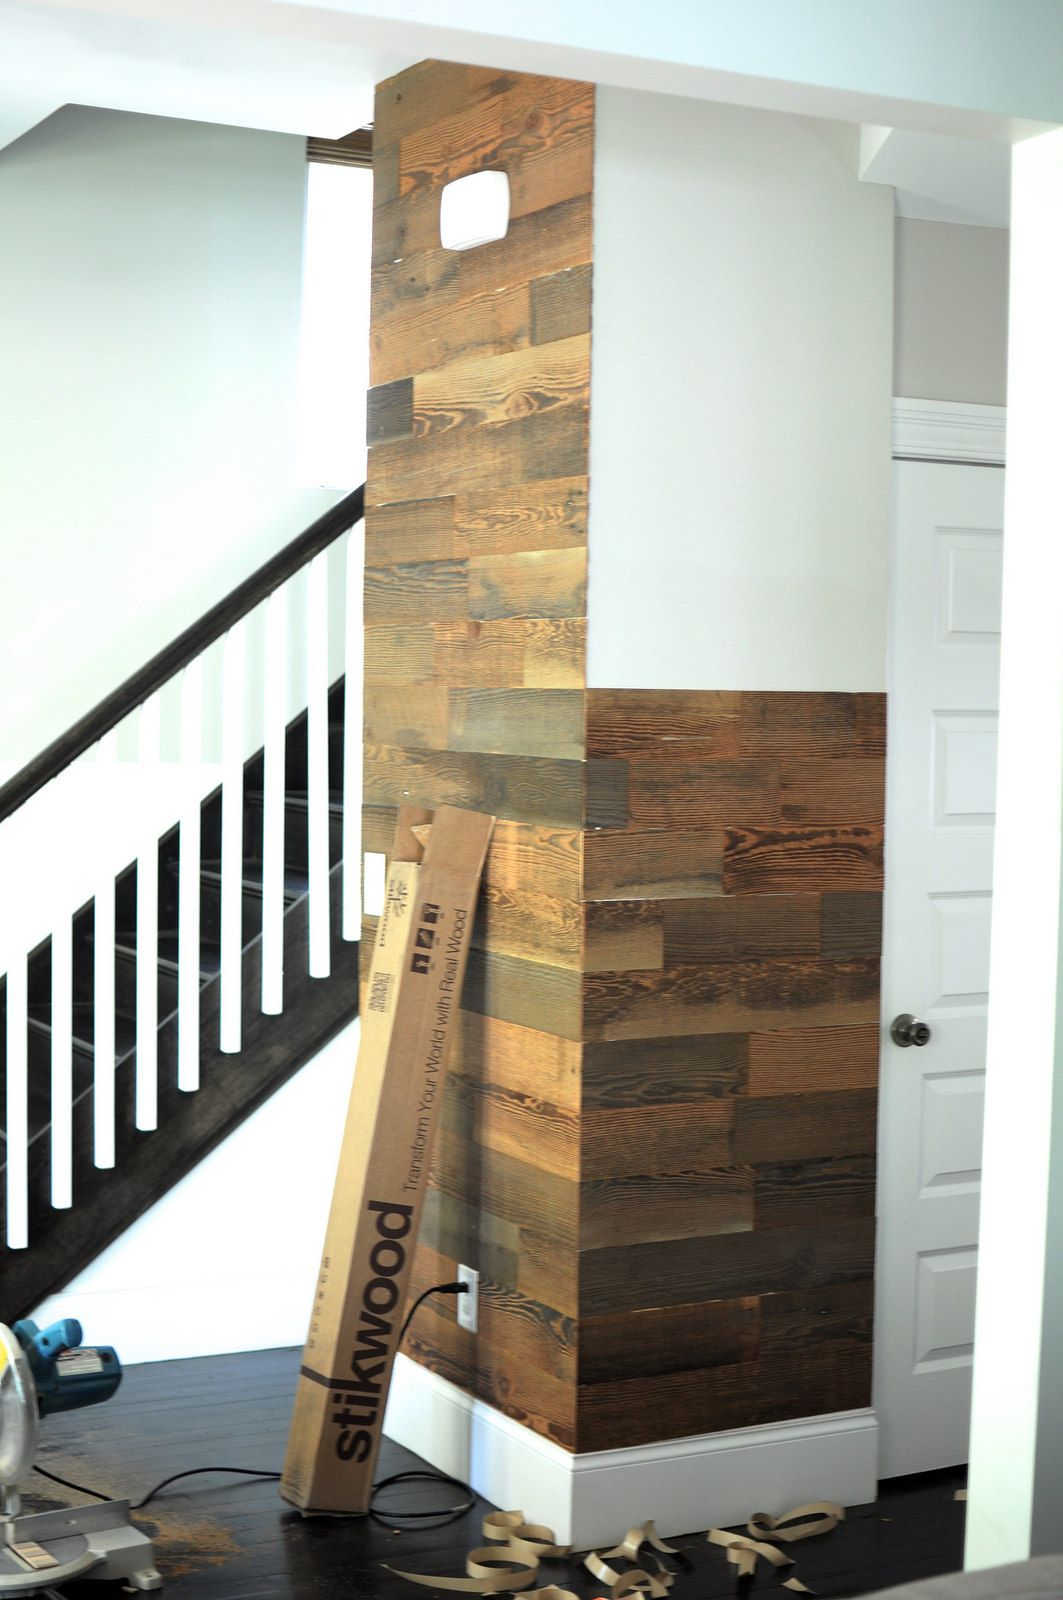 real wood decor stikwood is a peel and stick real wood decor rethink your walls DIY Stikwood Installation